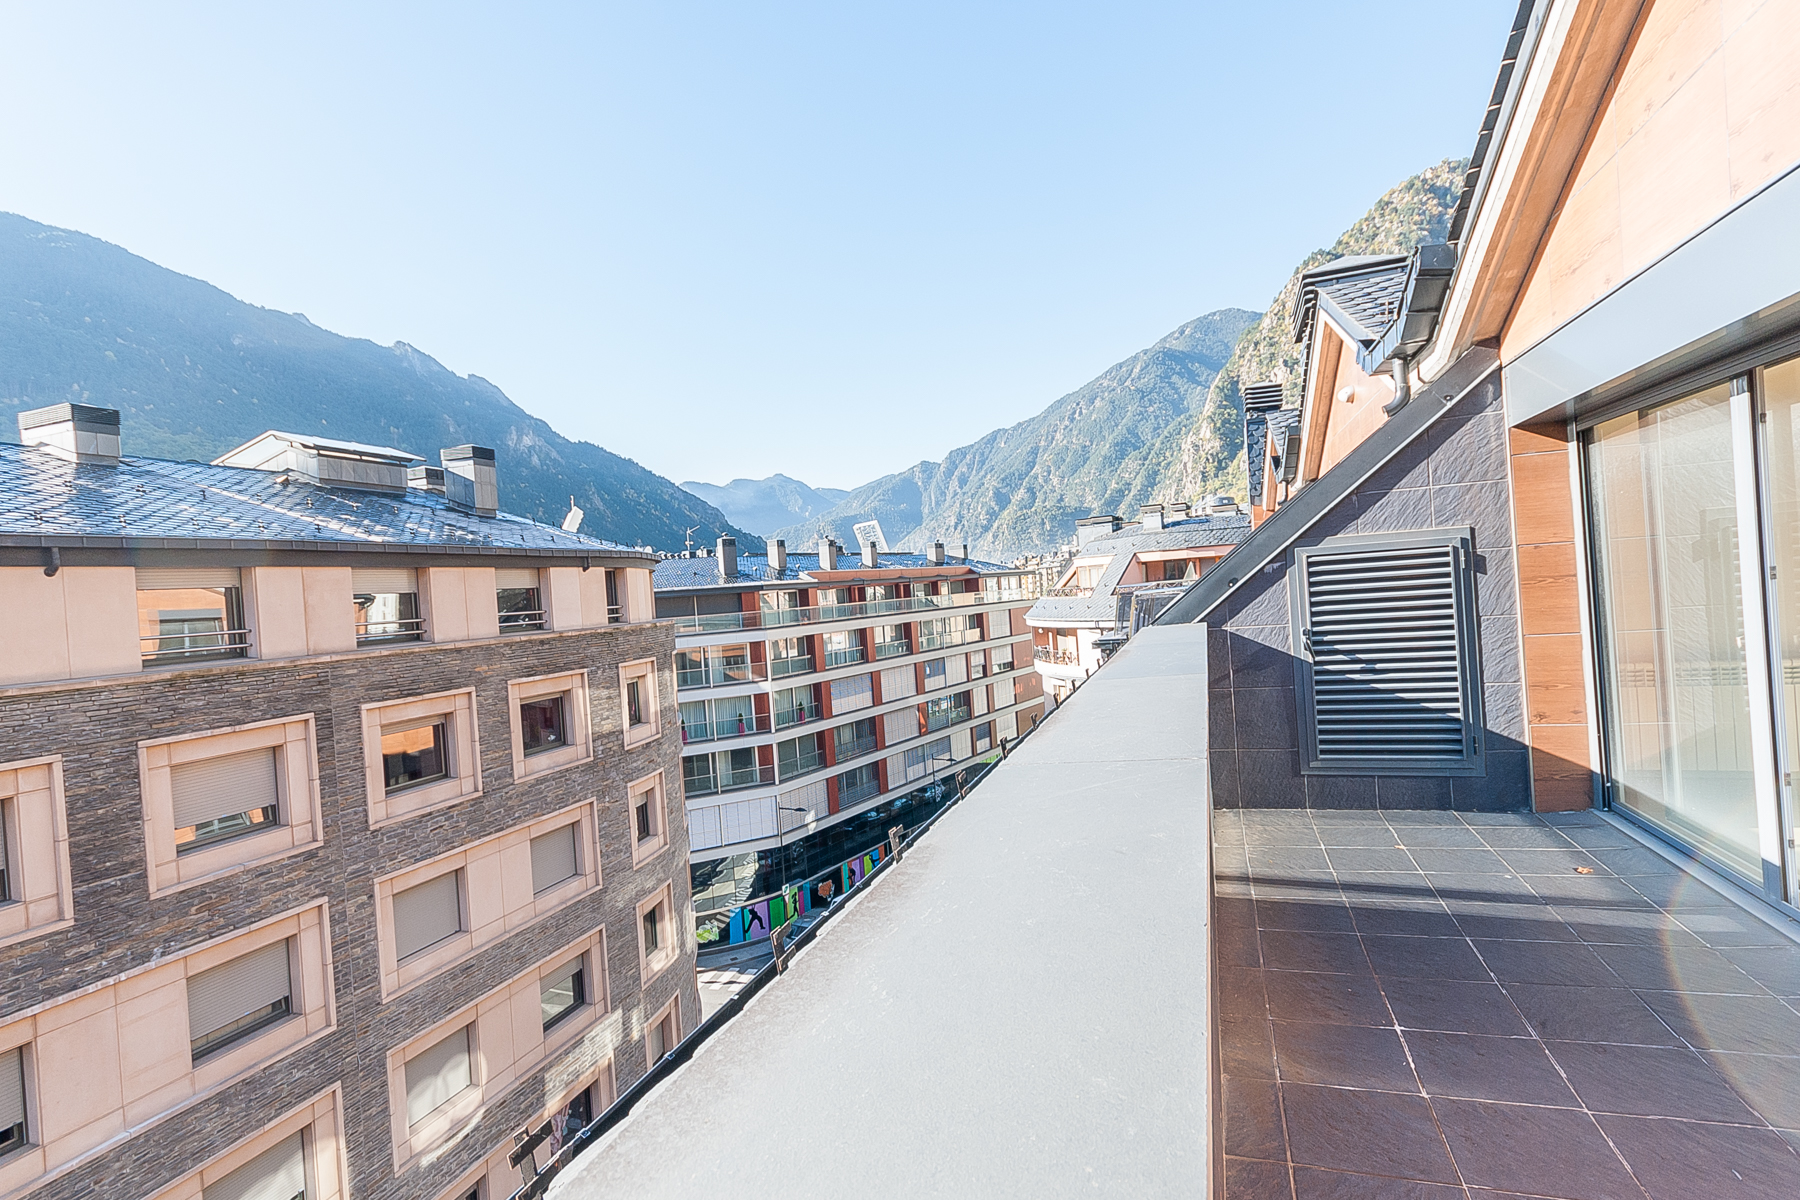 Apartment for Sale at Attic for sale in Andorra la Vella Andorra La Vella, Andorra La Vella, AD500 Andorra